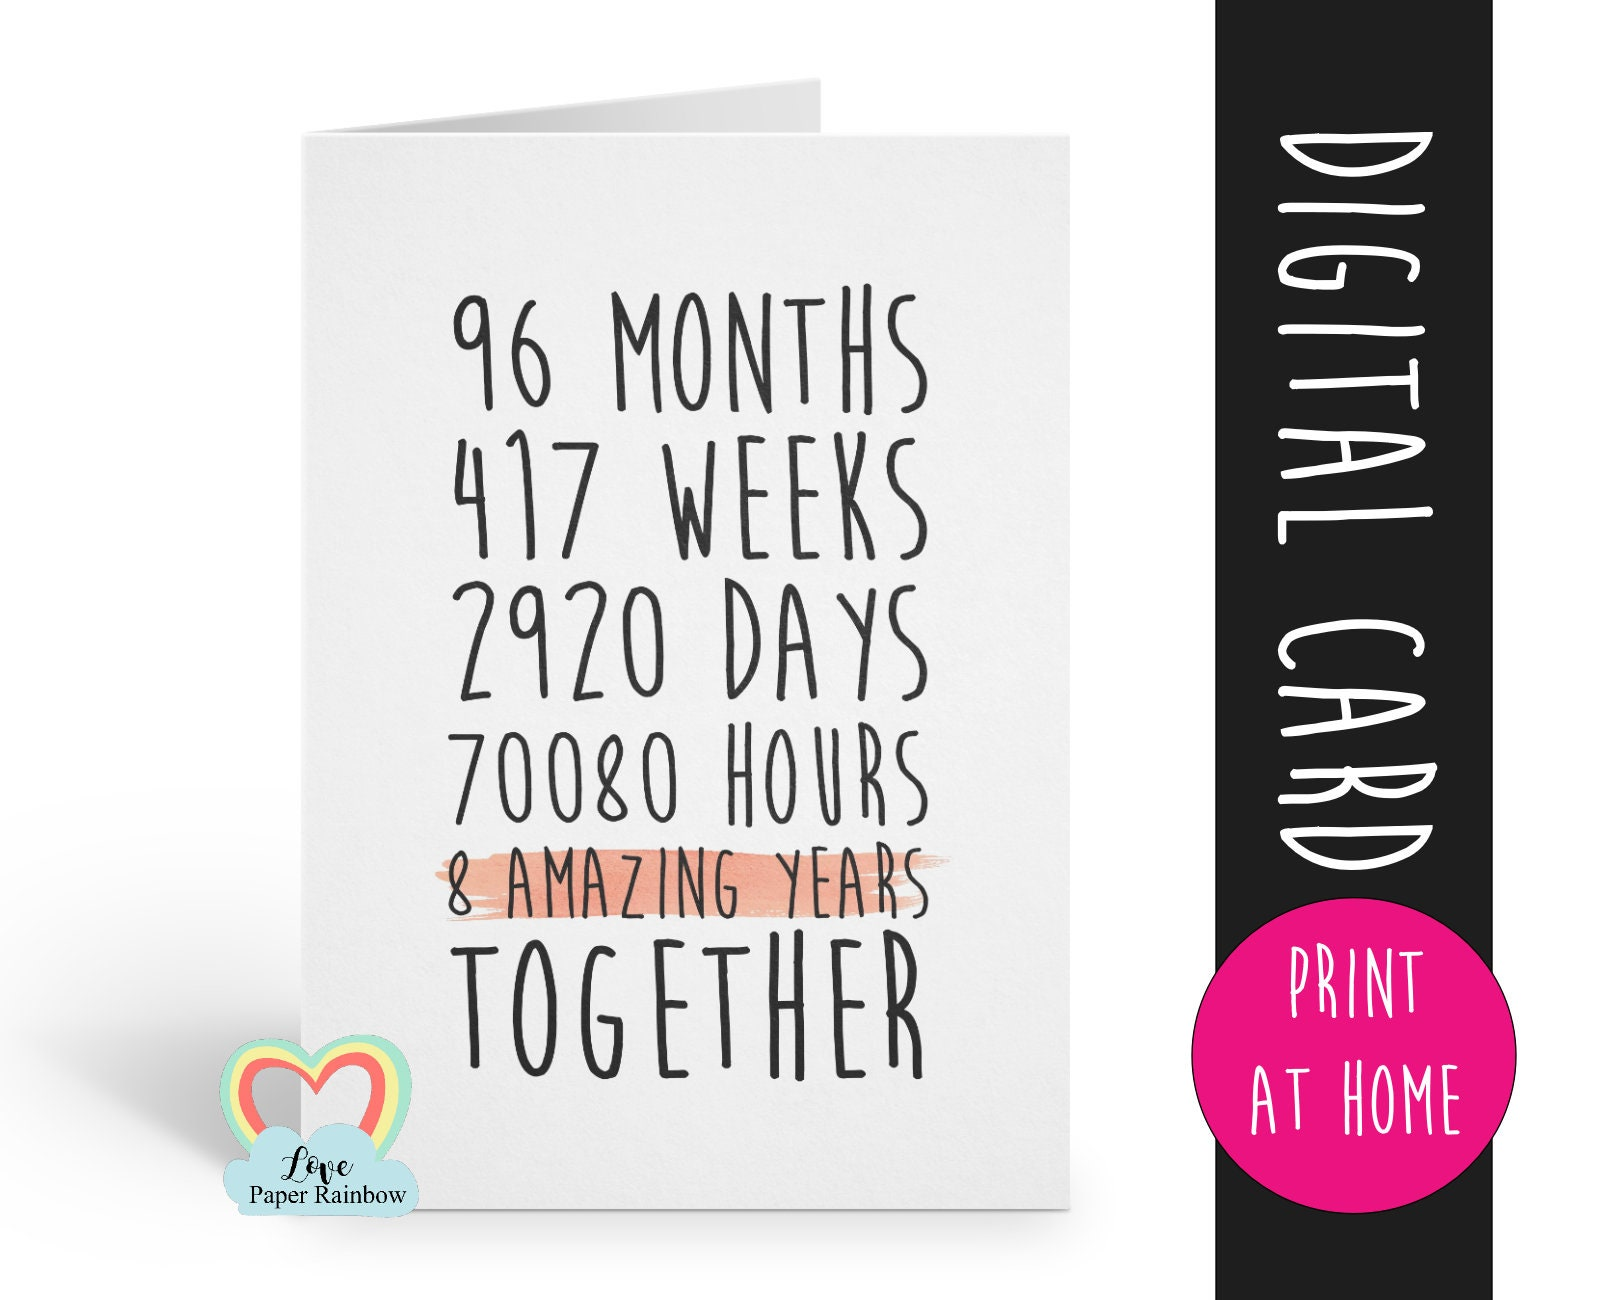 8th Wedding Anniversary.Printable 8th Anniversary Card 8th Wedding Anniversary